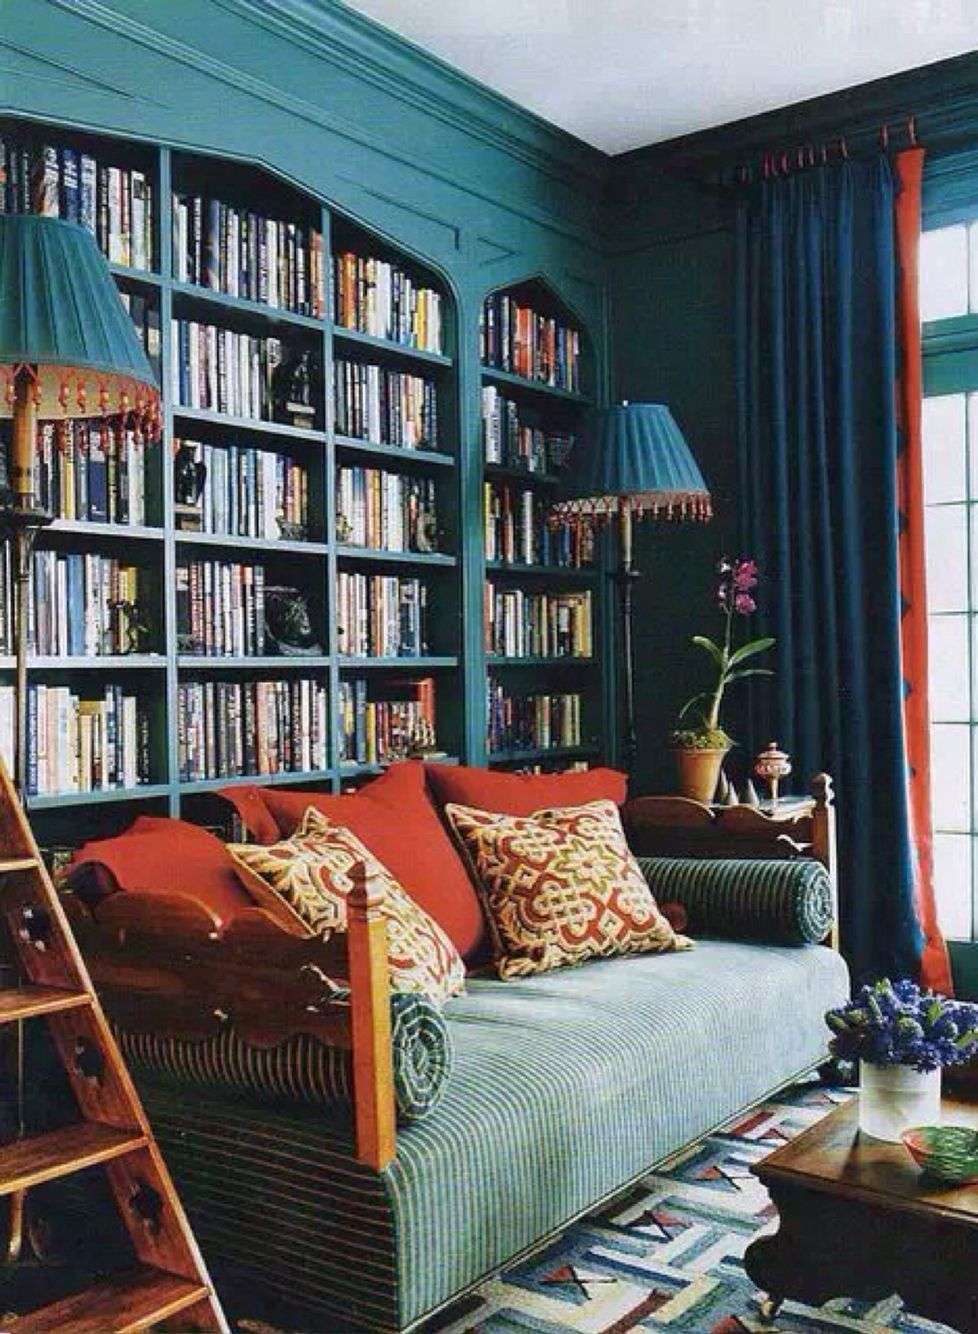 Contemporary Home Design To Bring Glam To Your Decor! | Bibliothek ...